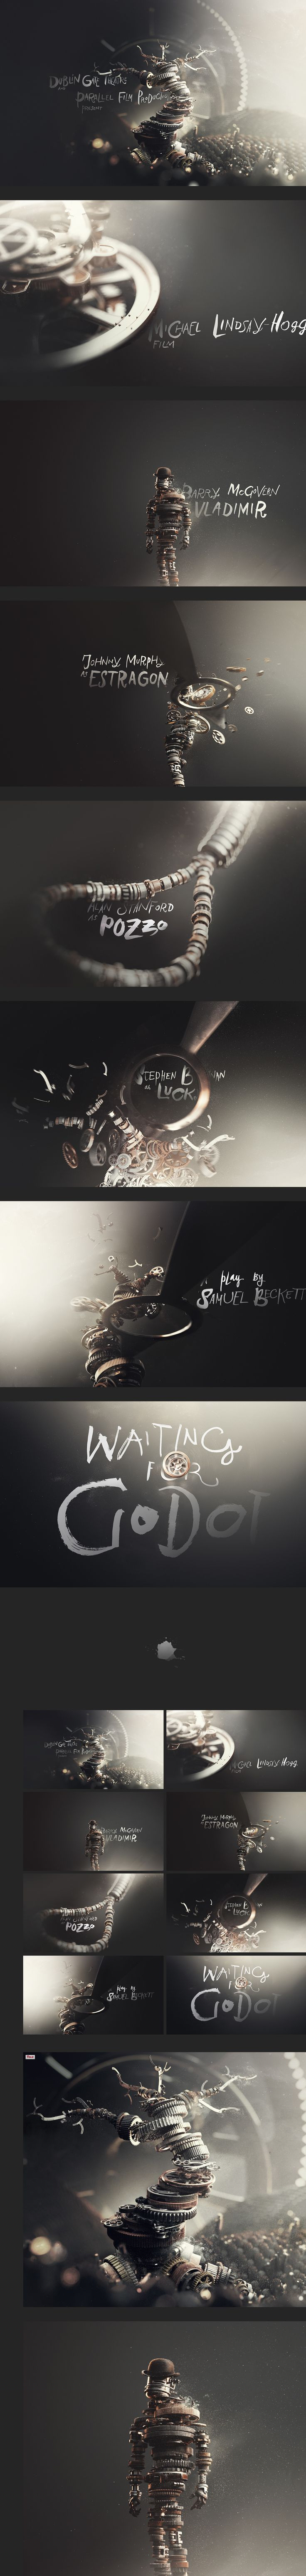 motion graphics/ storyboards/ styleframes | Waiting for Godot